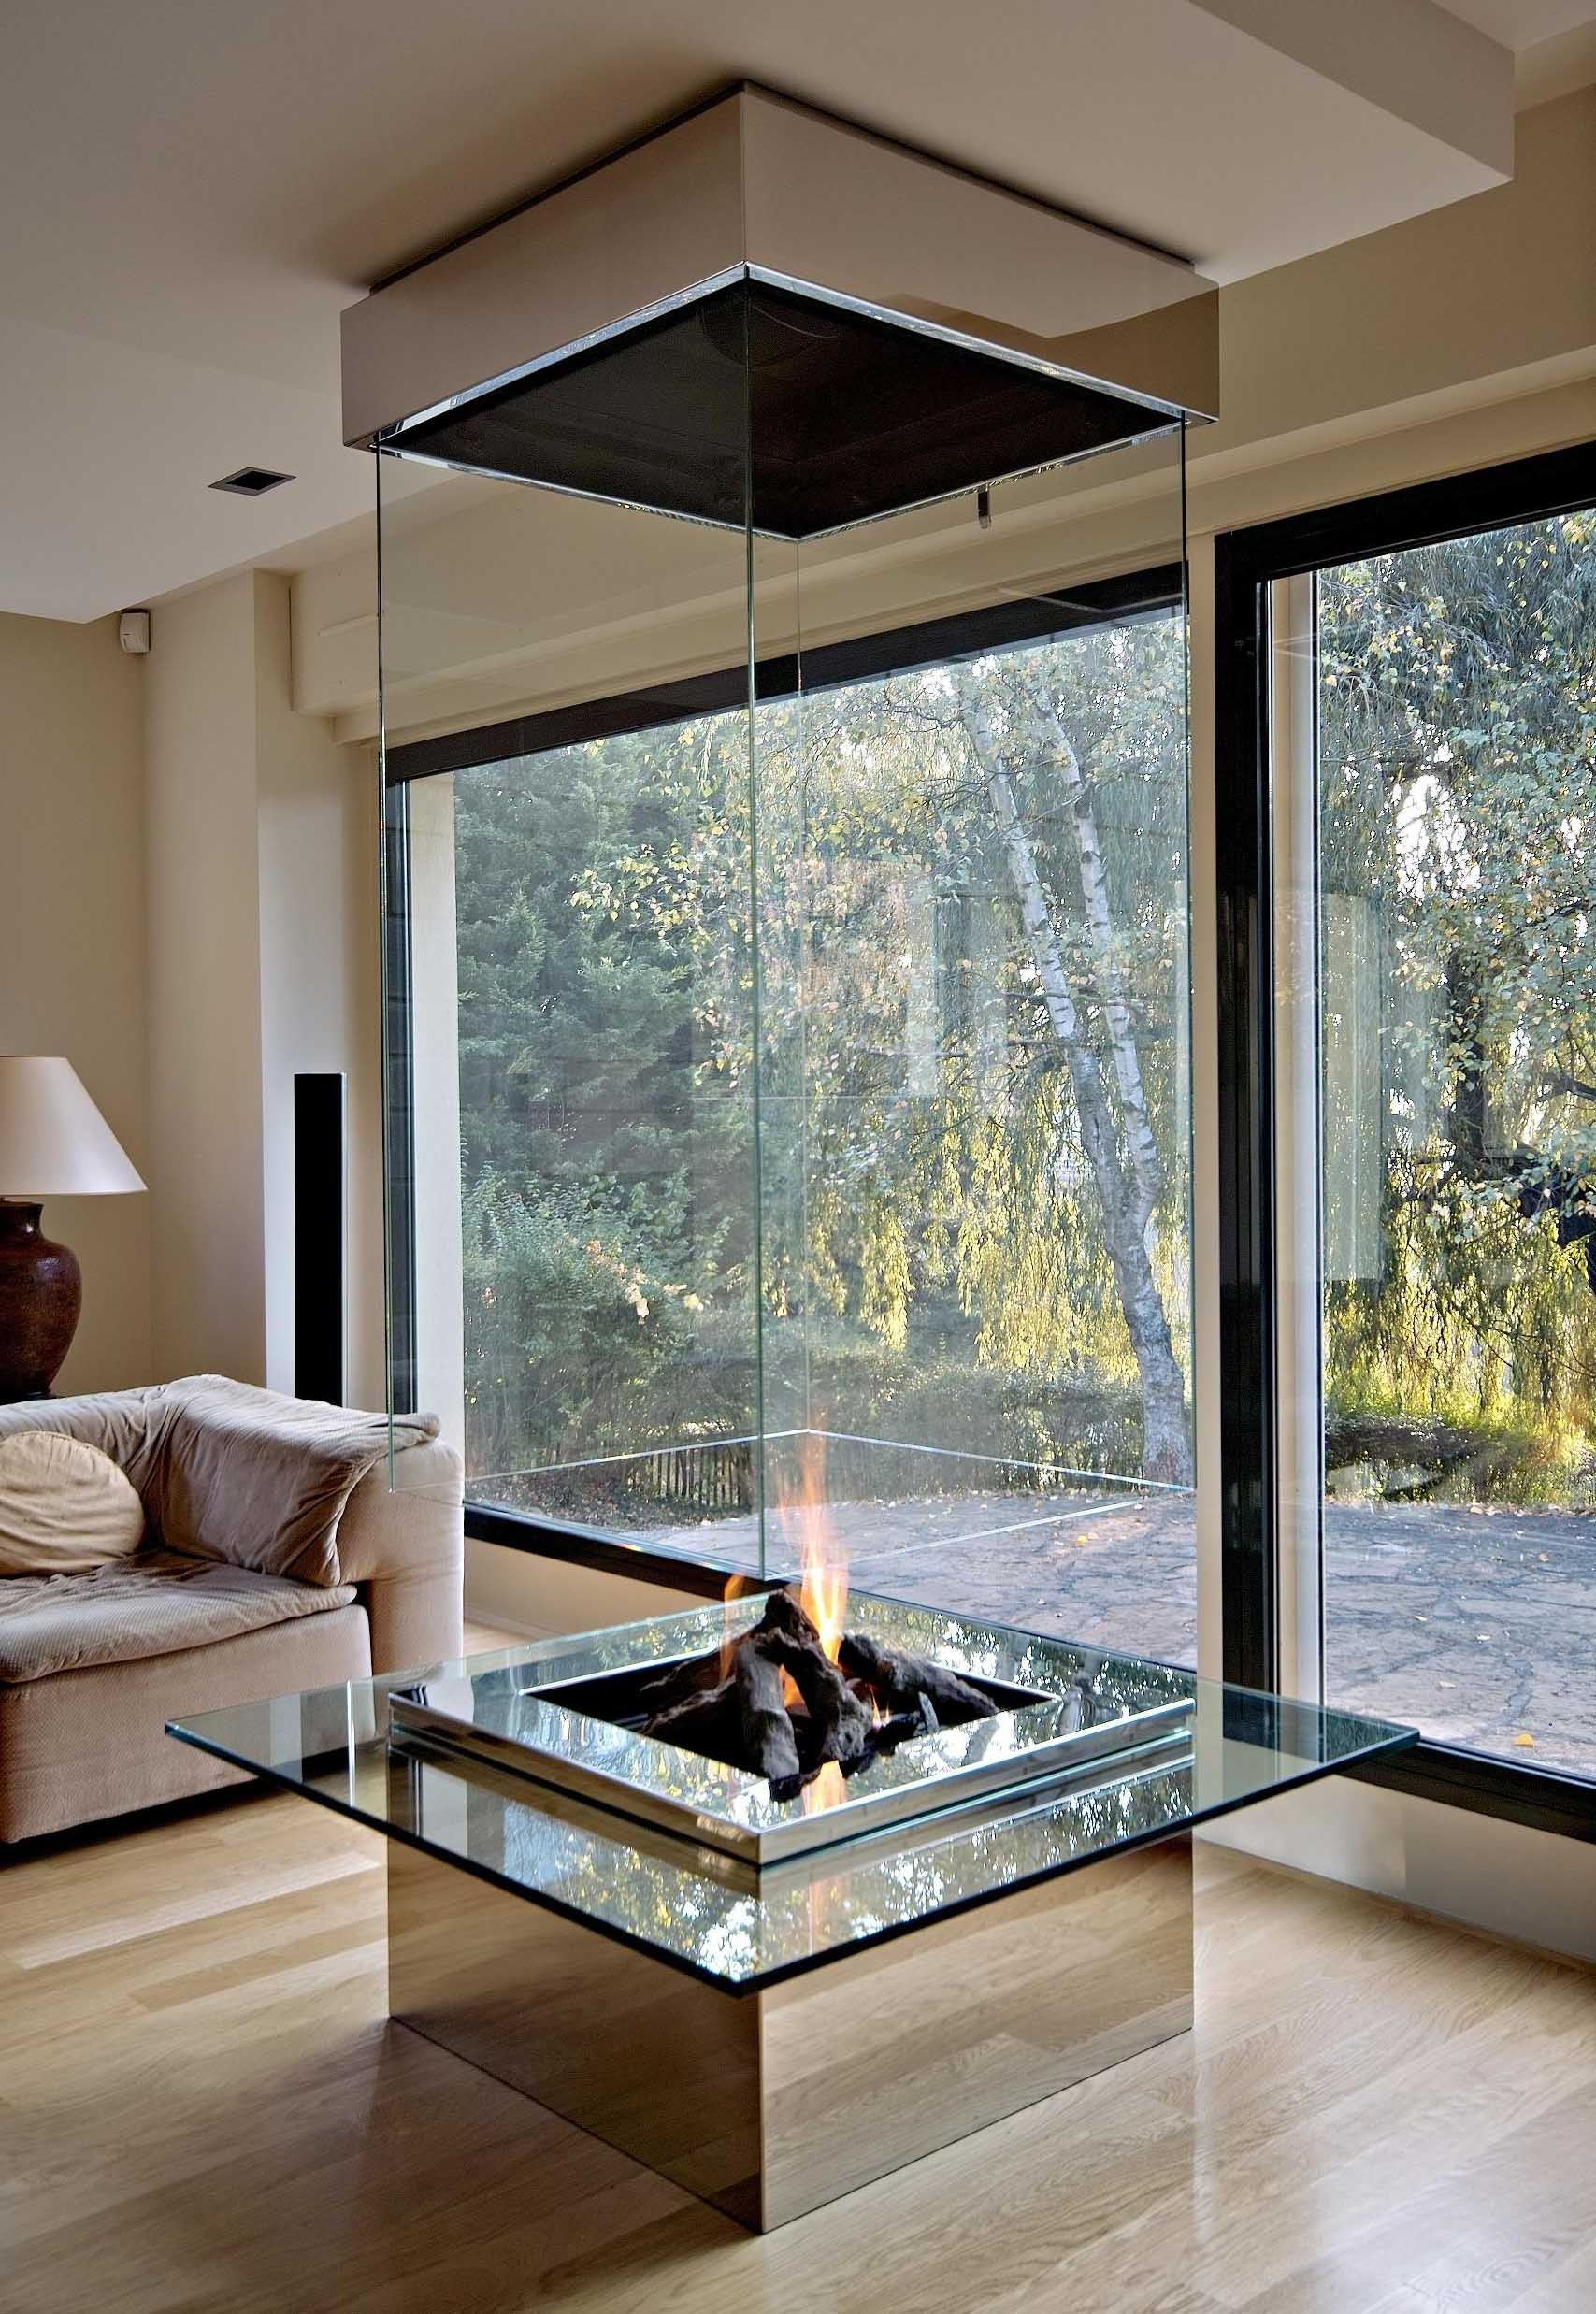 50 Modern Fireplace Ideas to Fall in Love With | Modern fireplaces ...